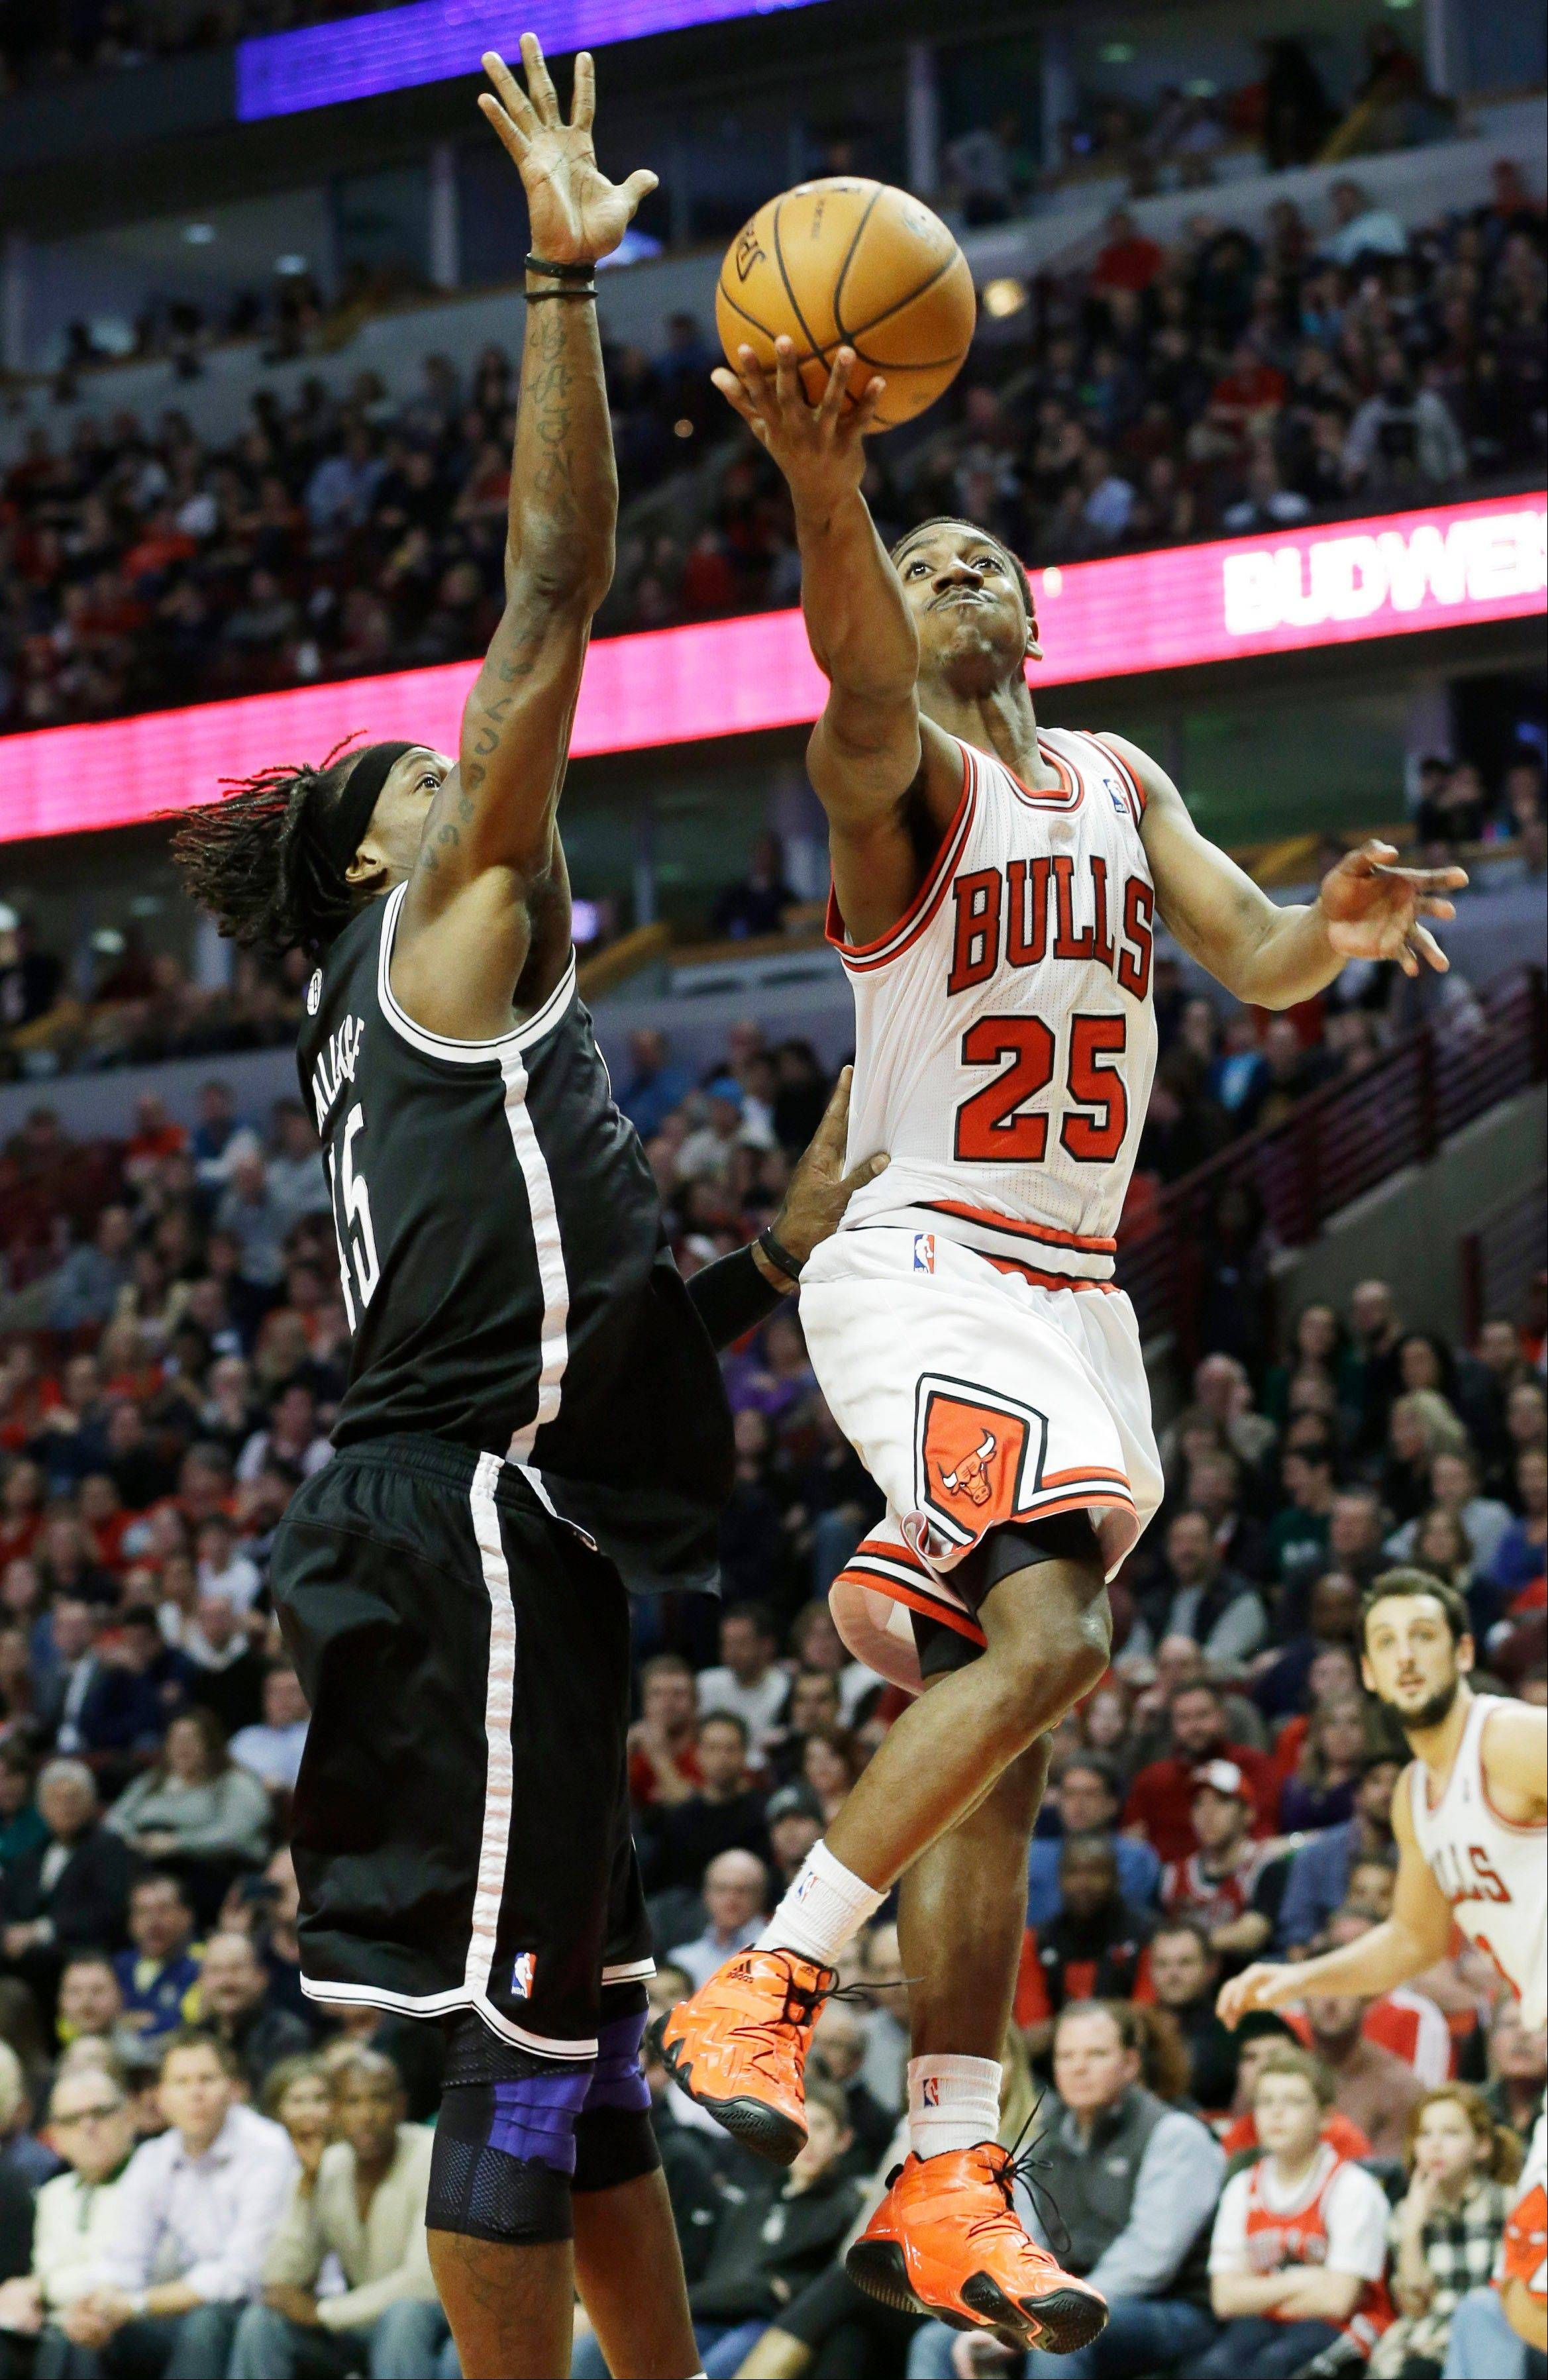 Marquis Teague, right, drives to the basket against Brooklyn Nets forward Gerald Wallace during the second half of an NBA basketball game in Chicago on Saturday, Dec. 15, 2012. The Bulls won 83-82.